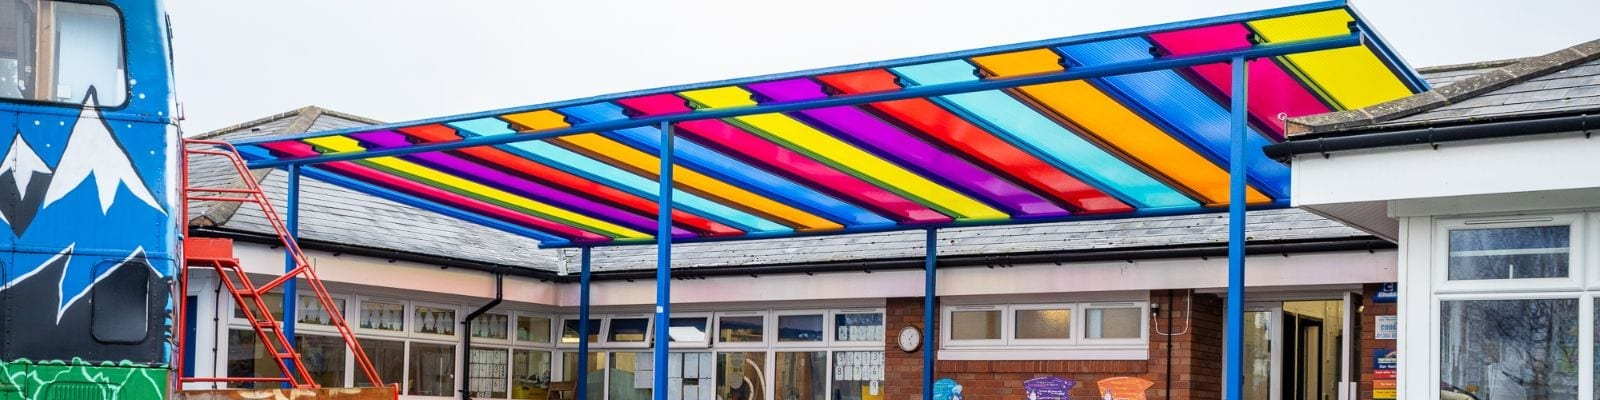 Rainbow roof shelter we designed for Old Church C of E Primary School